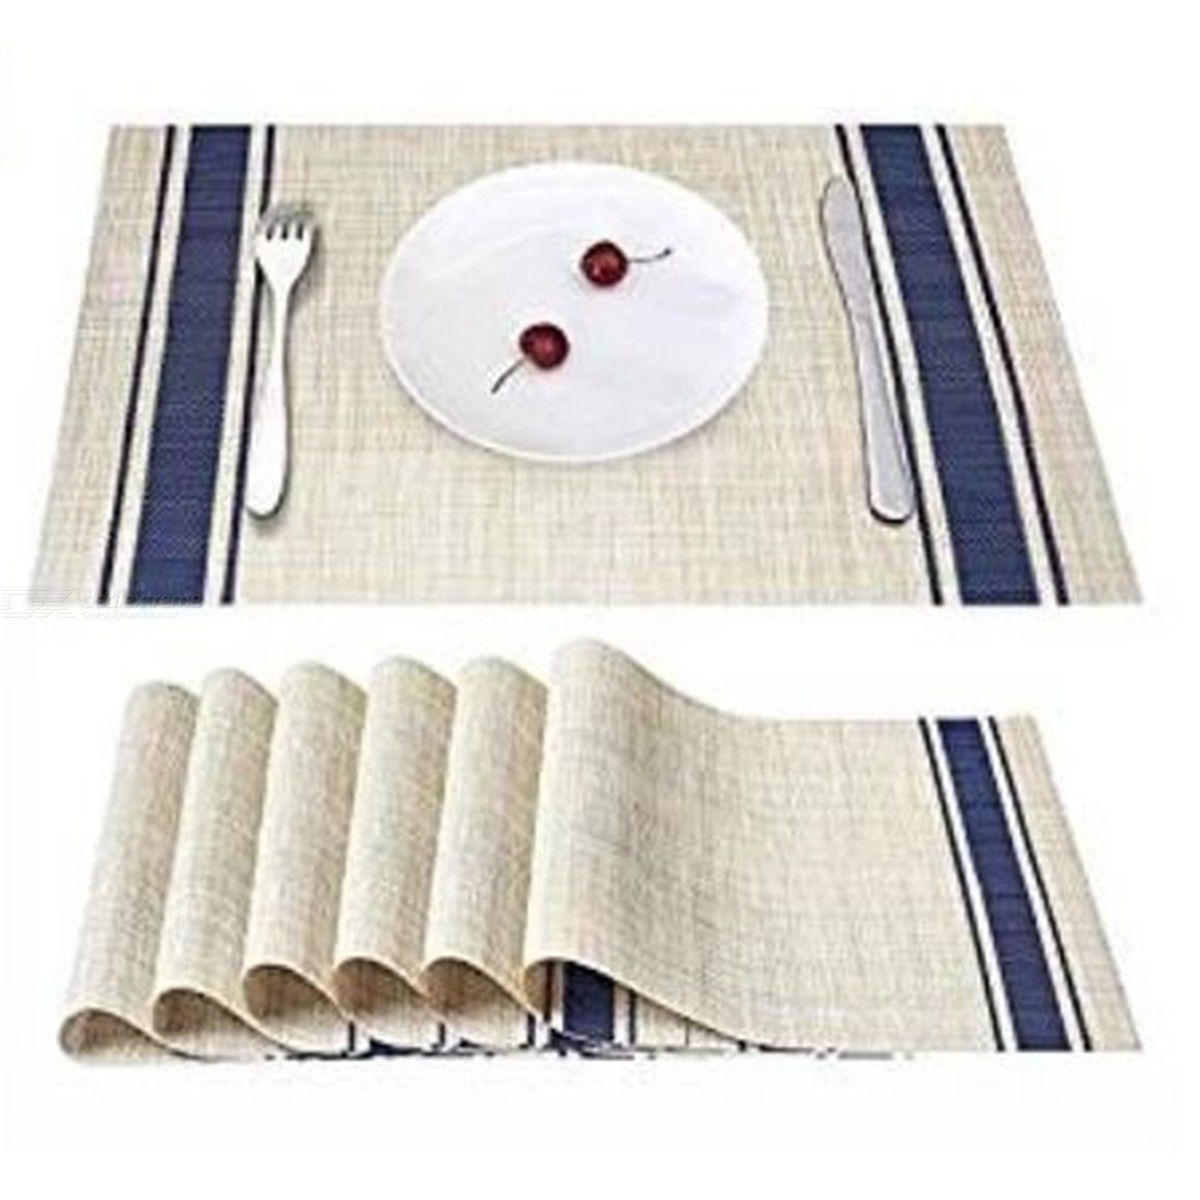 Simple Fashion Tableware Mats Modern Pvc Square Table Pads